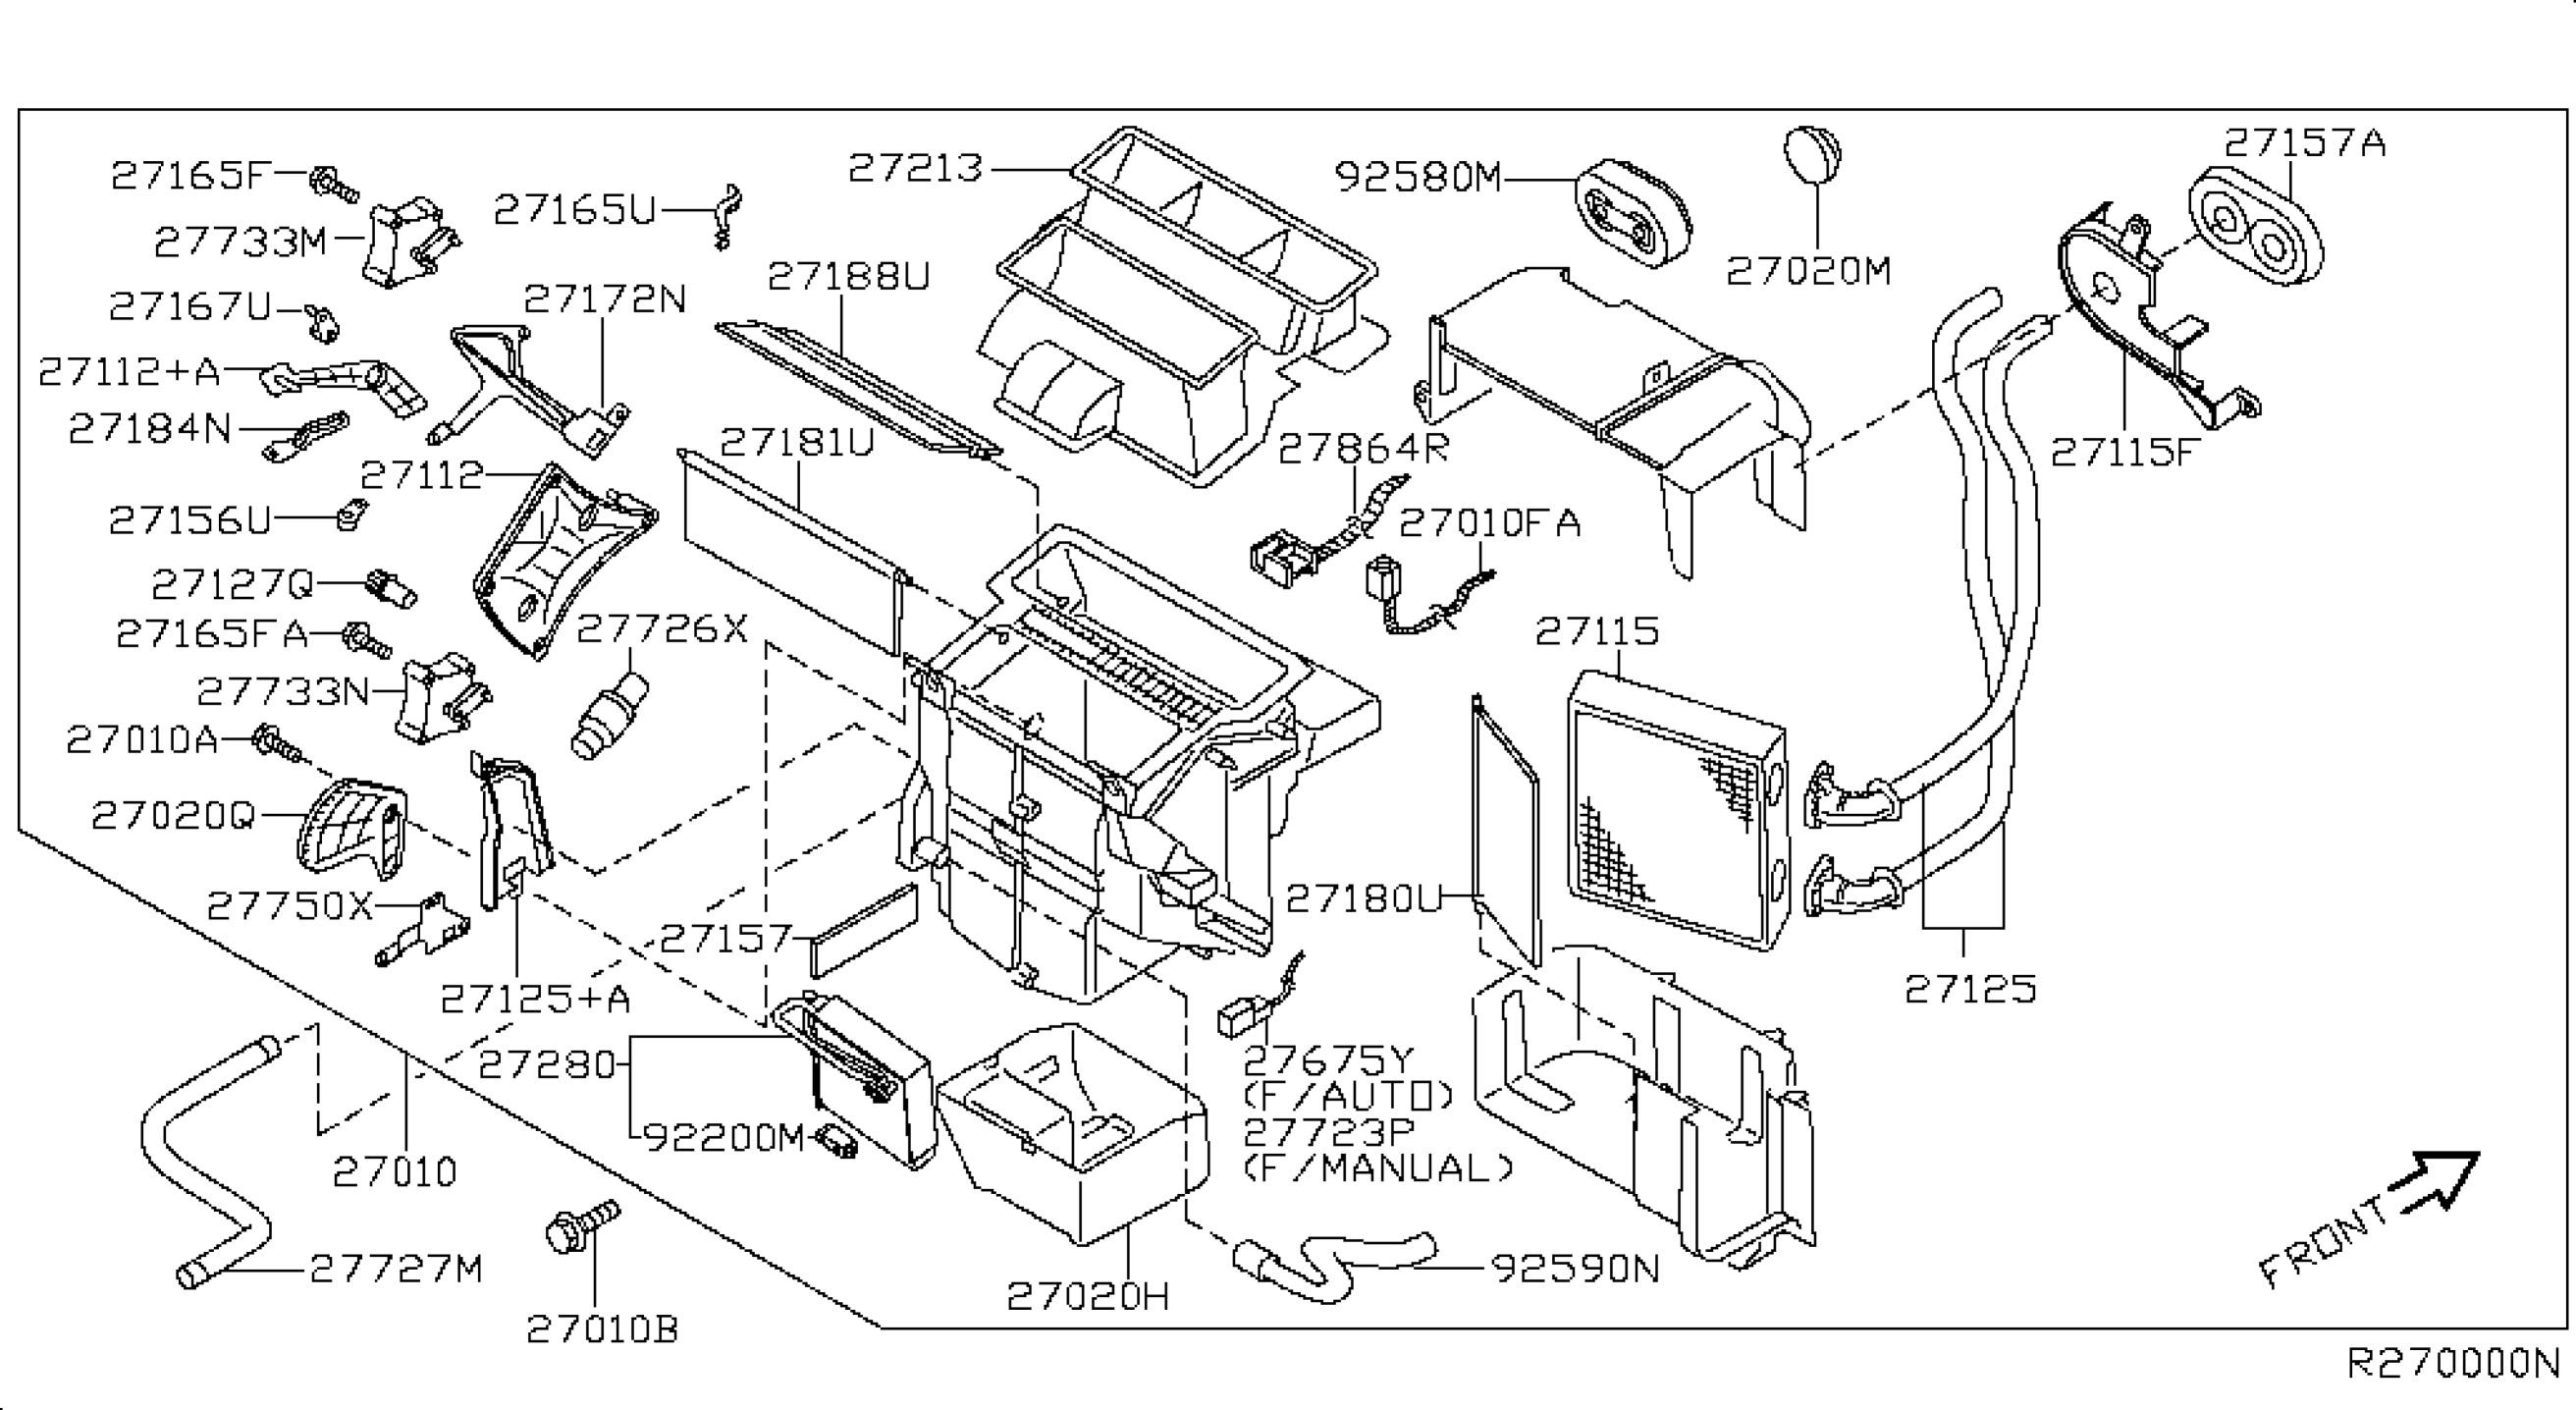 Nissan Maxima Bose Radio Wiring Wire Data Schema Factory To Aftermarket Diagram For 1996 Excellent Frontier Exhaust Stereo 1998 Replacement